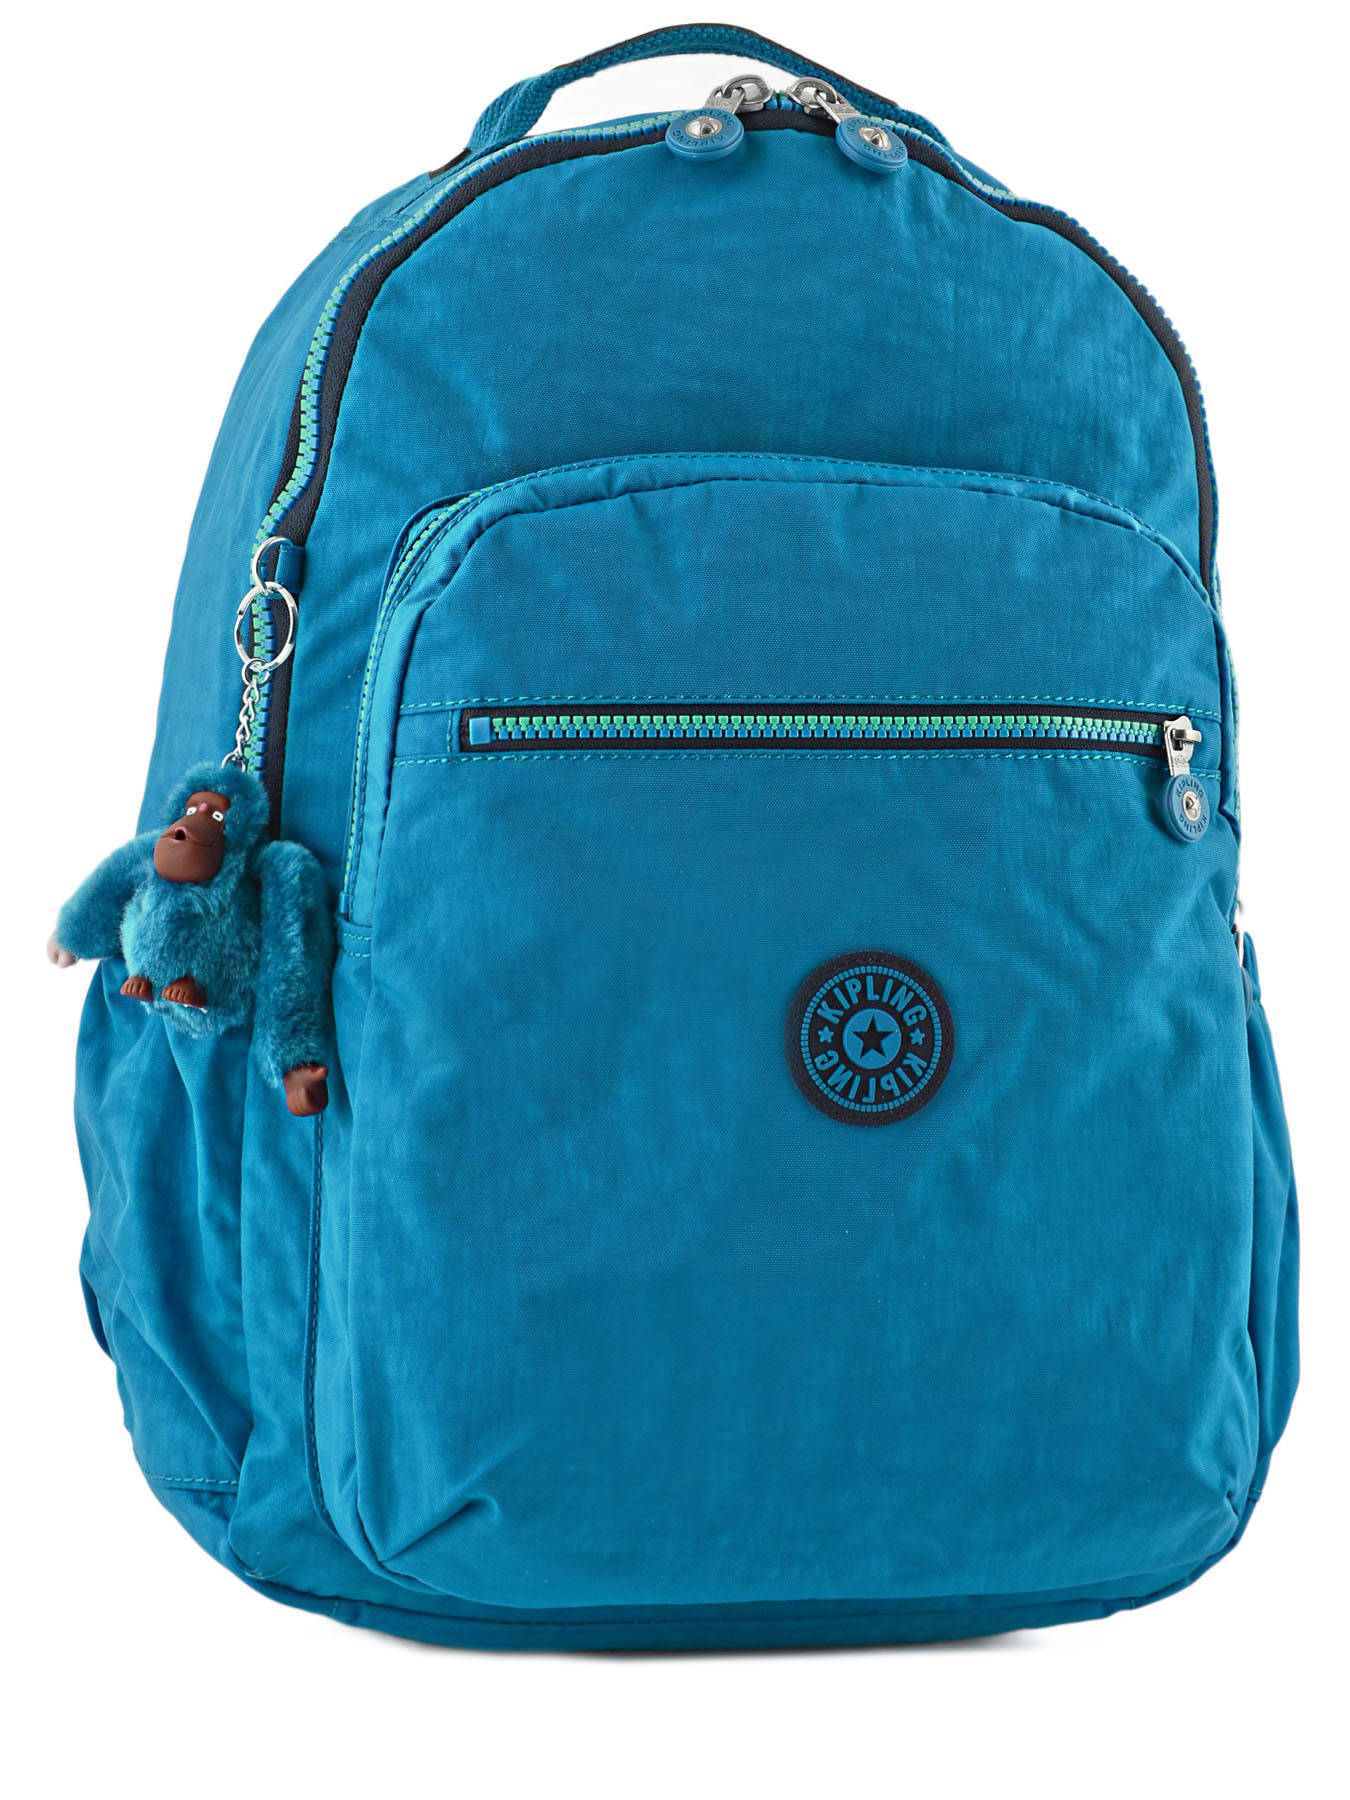 Kipling Backpack Seoul Up Free Shipping Available